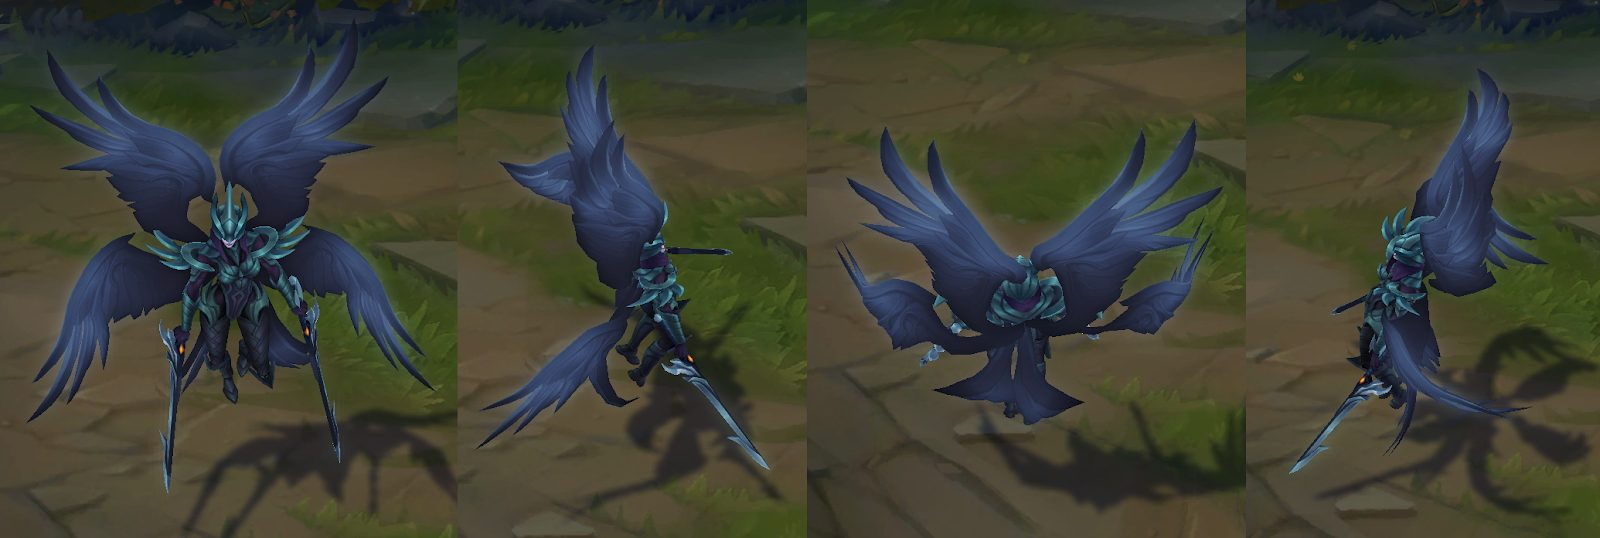 judgement kayle animation